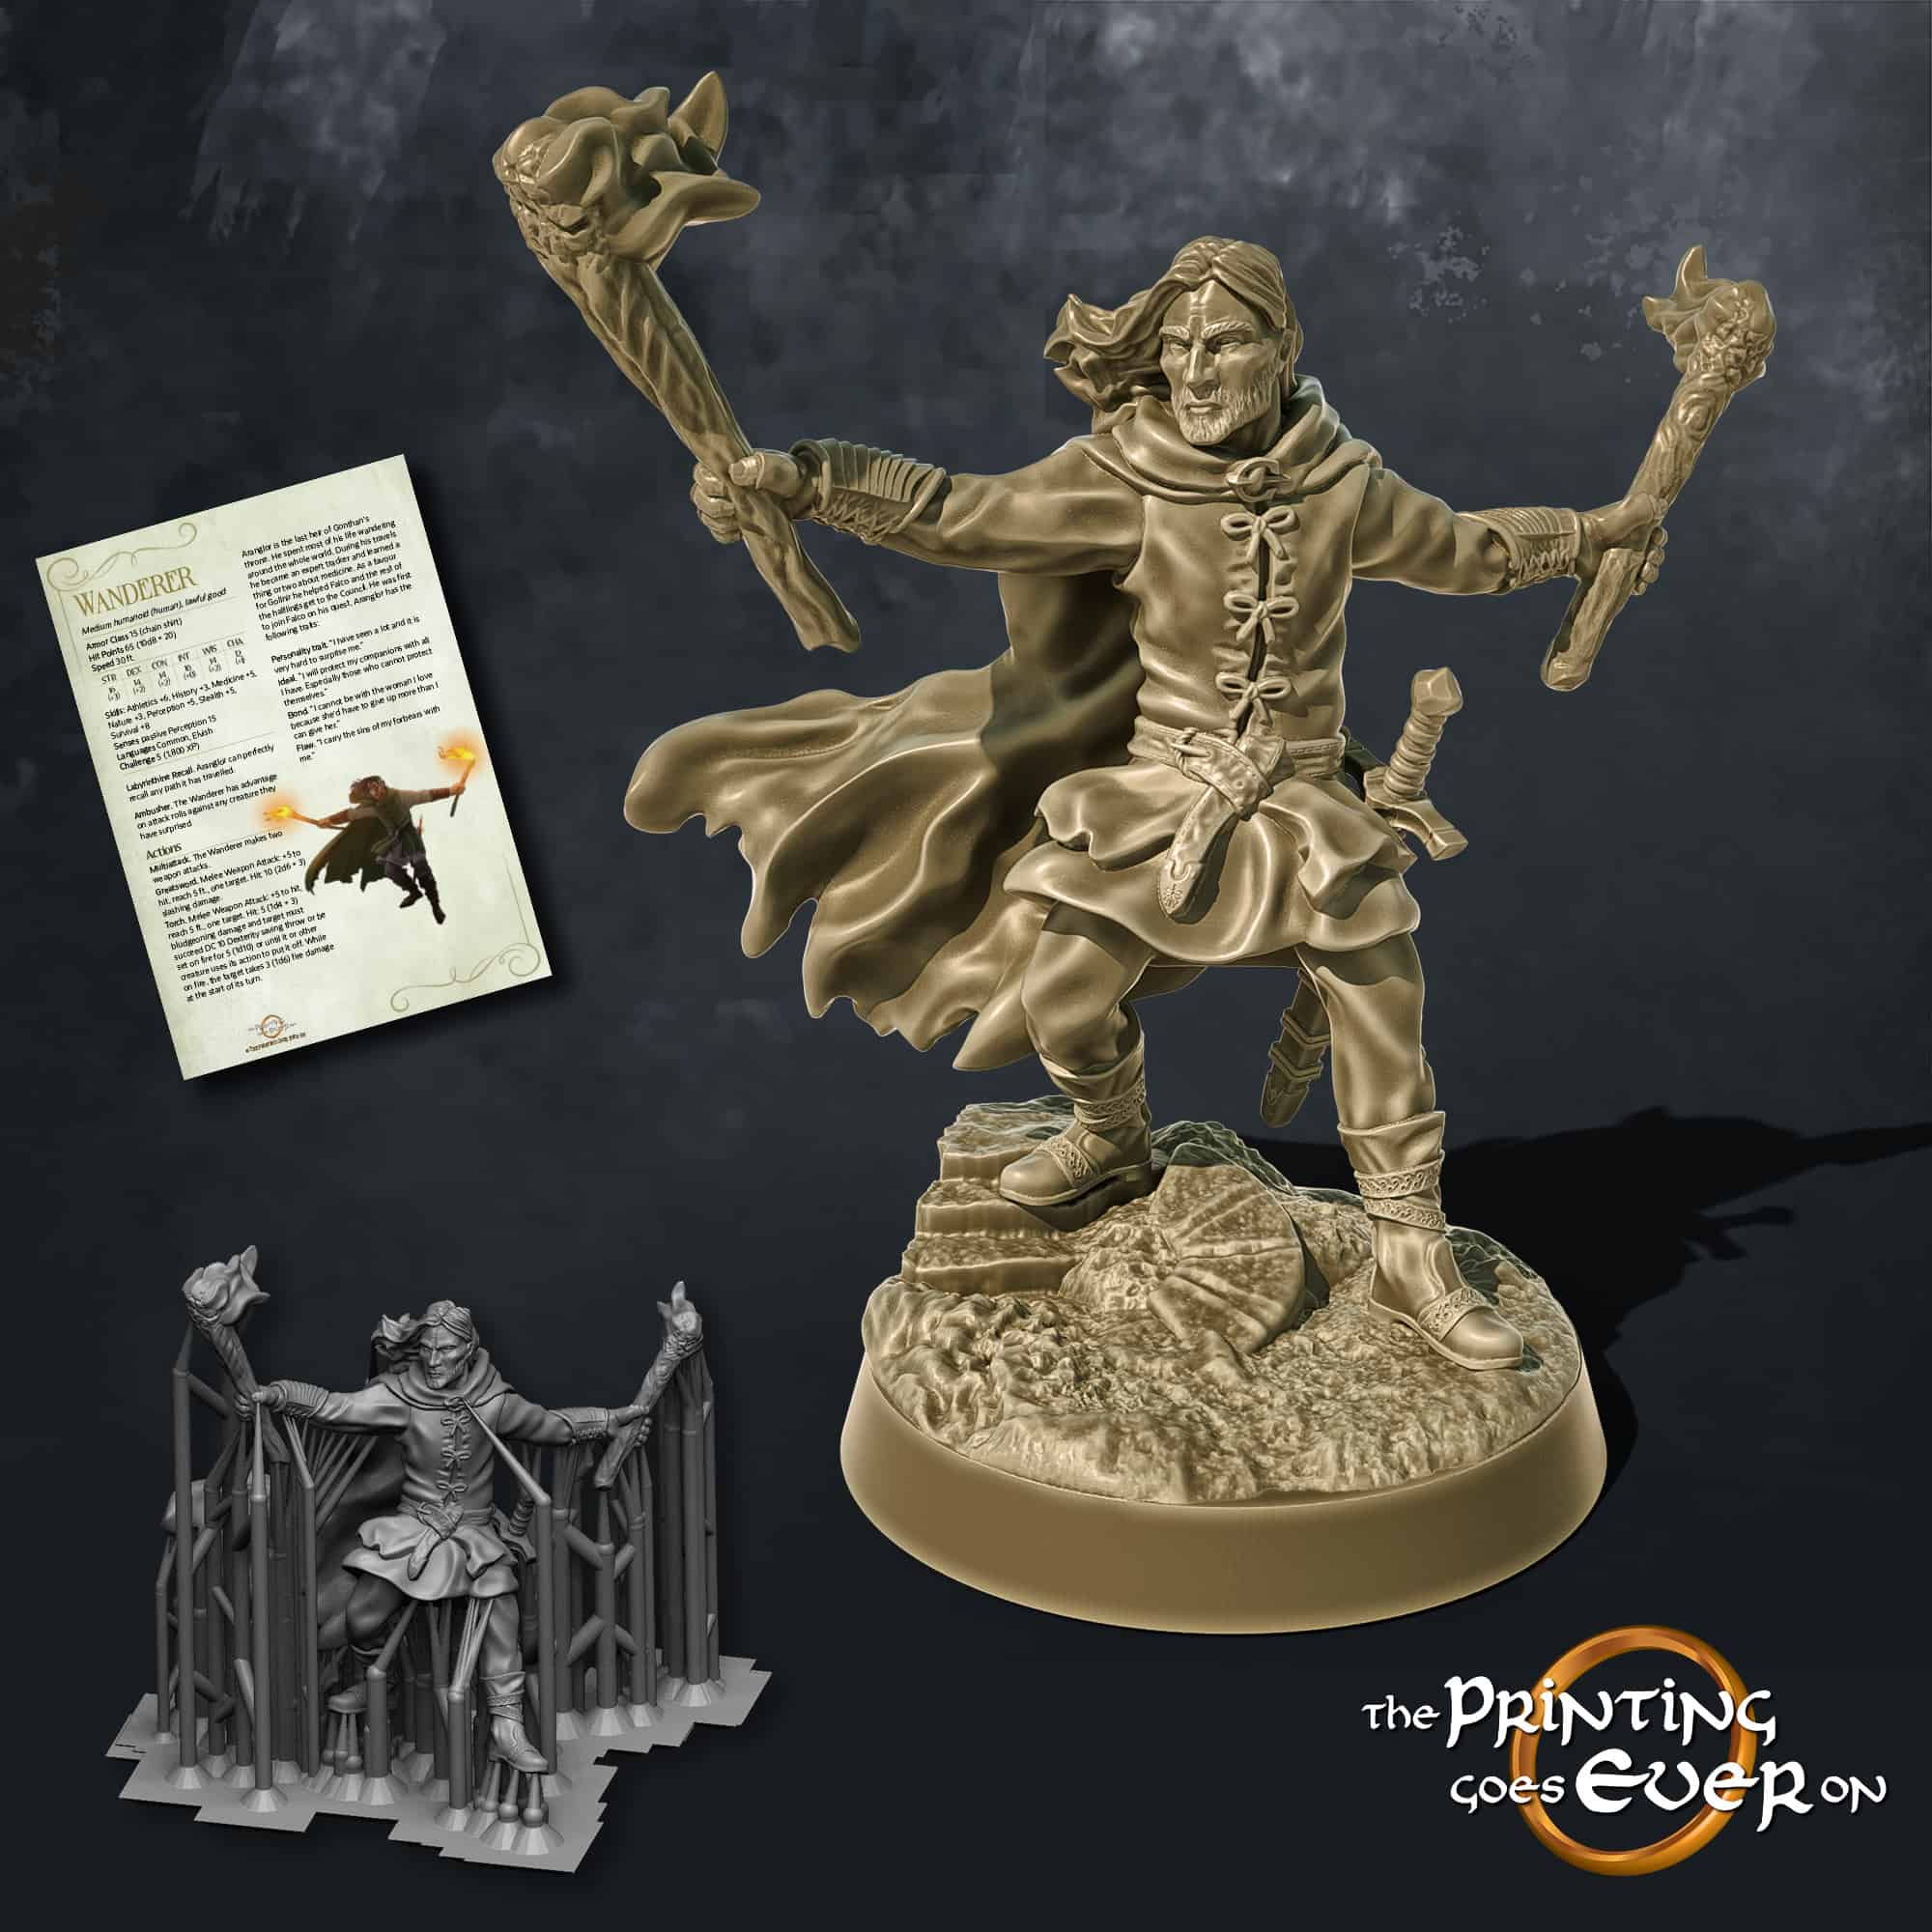 wanderer ranger with torches in hands the printing goes ever on october 2020 patreon pack miniature